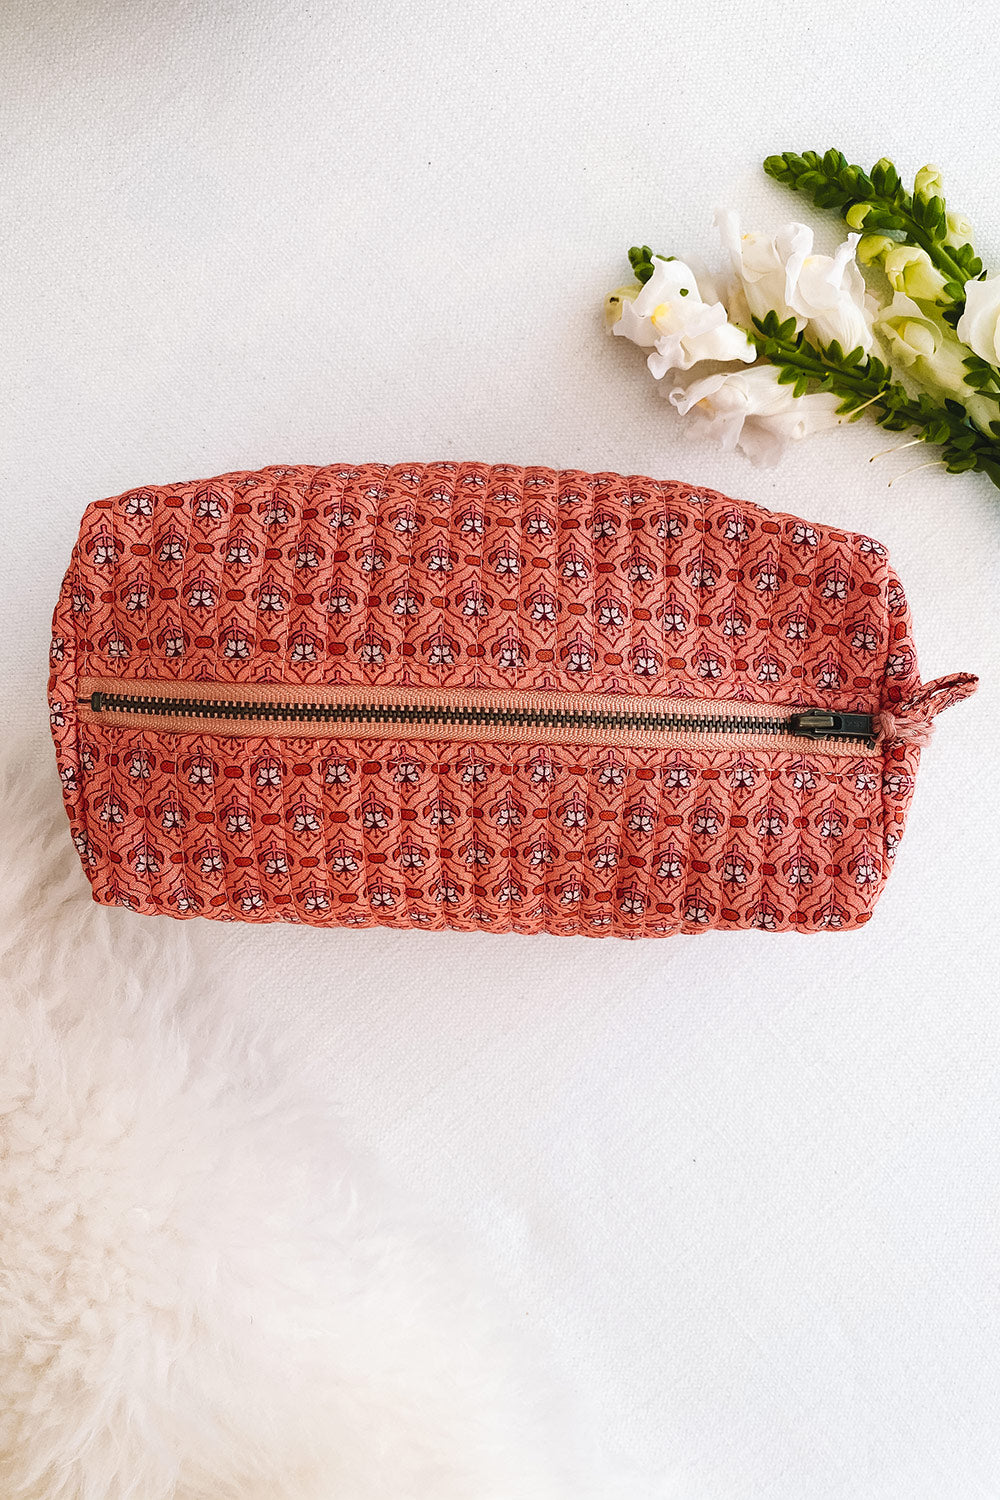 Fleetwood Revive Beauty Bag in Tile Peach